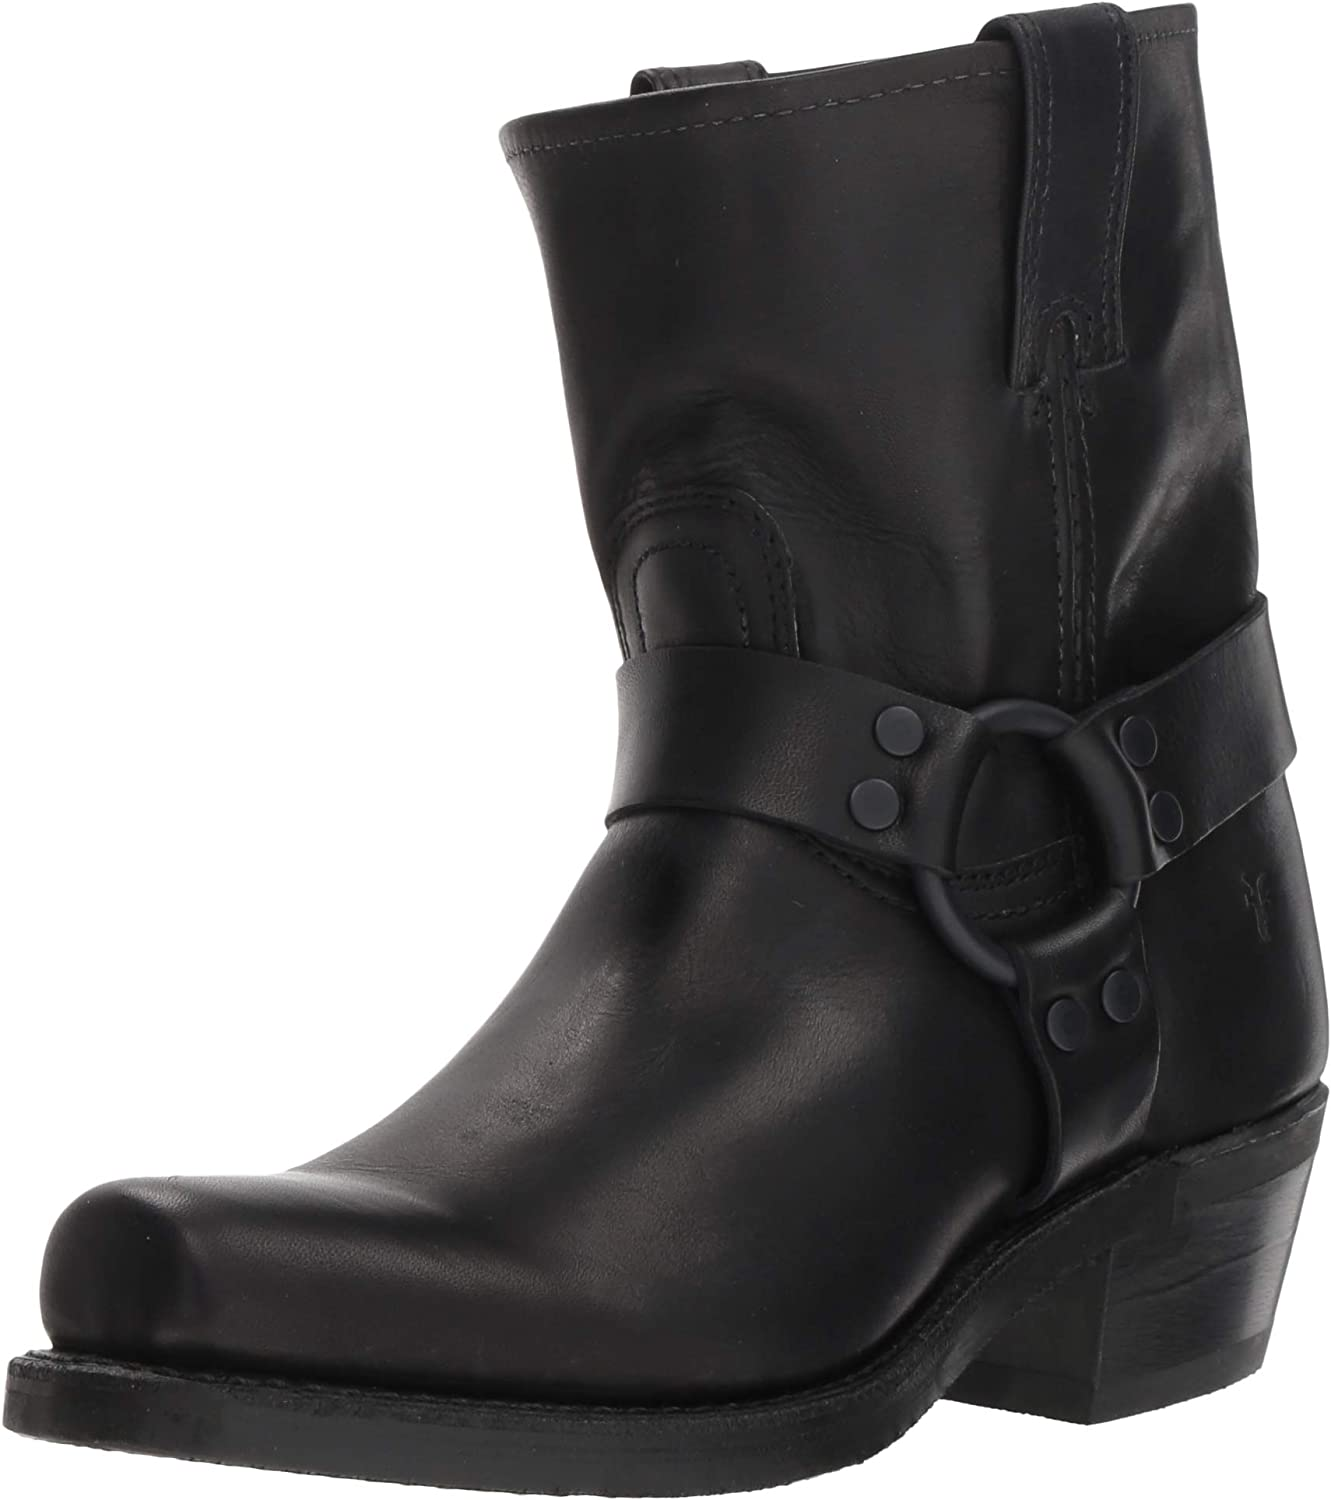 FRYE Women's Harness 8G Ankle Boot